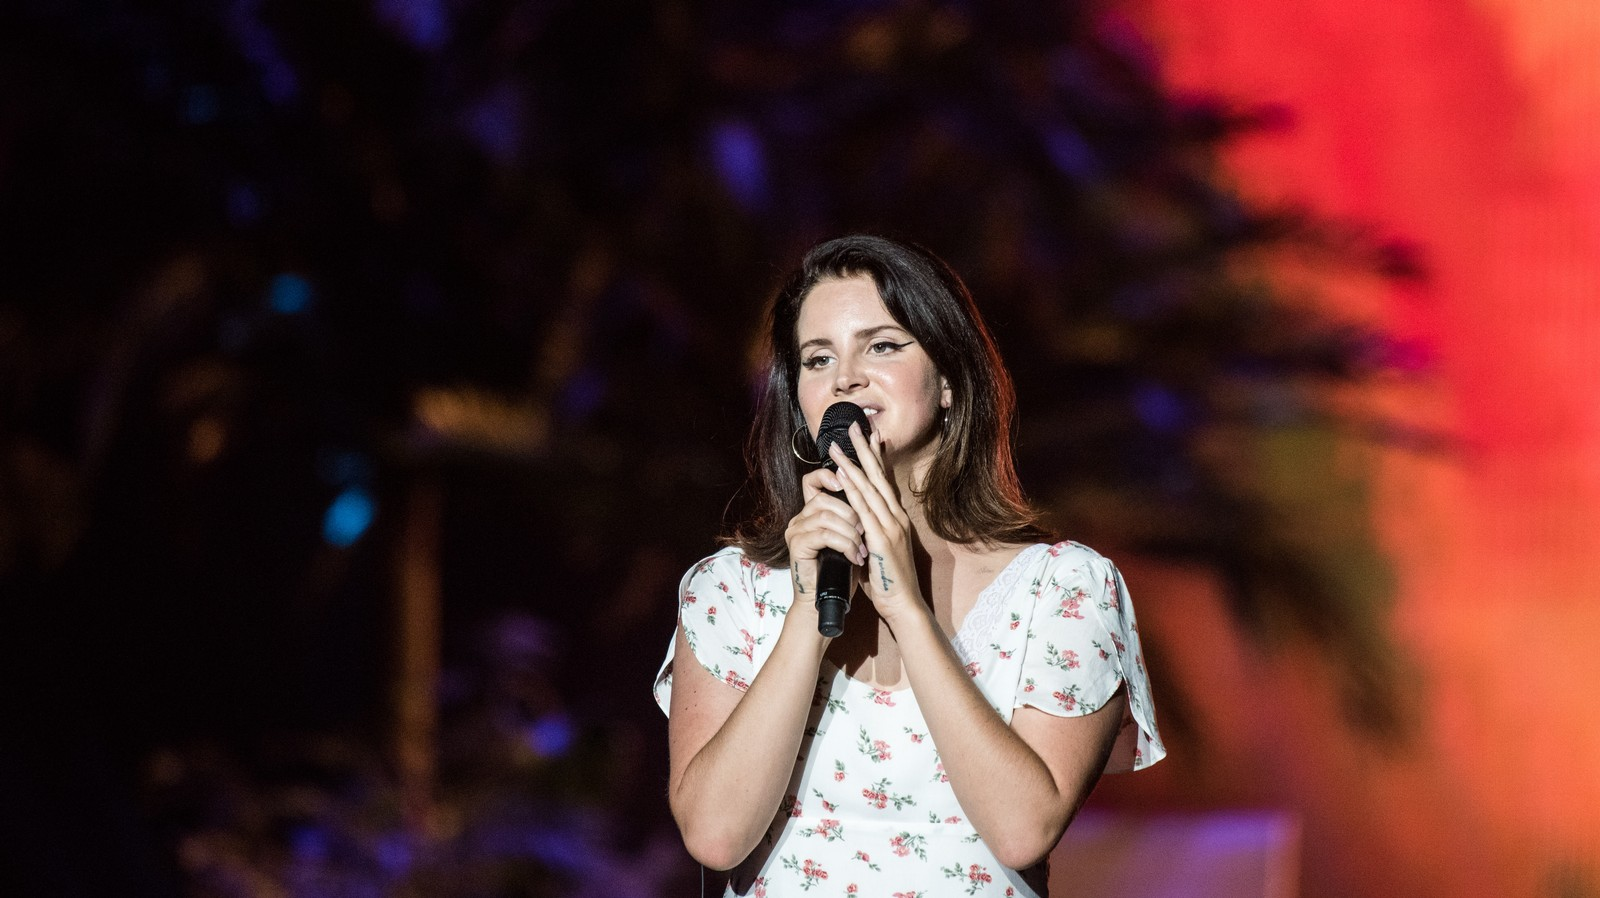 Lana Del Rey Will Never Change, and That's Why She's the Greatest